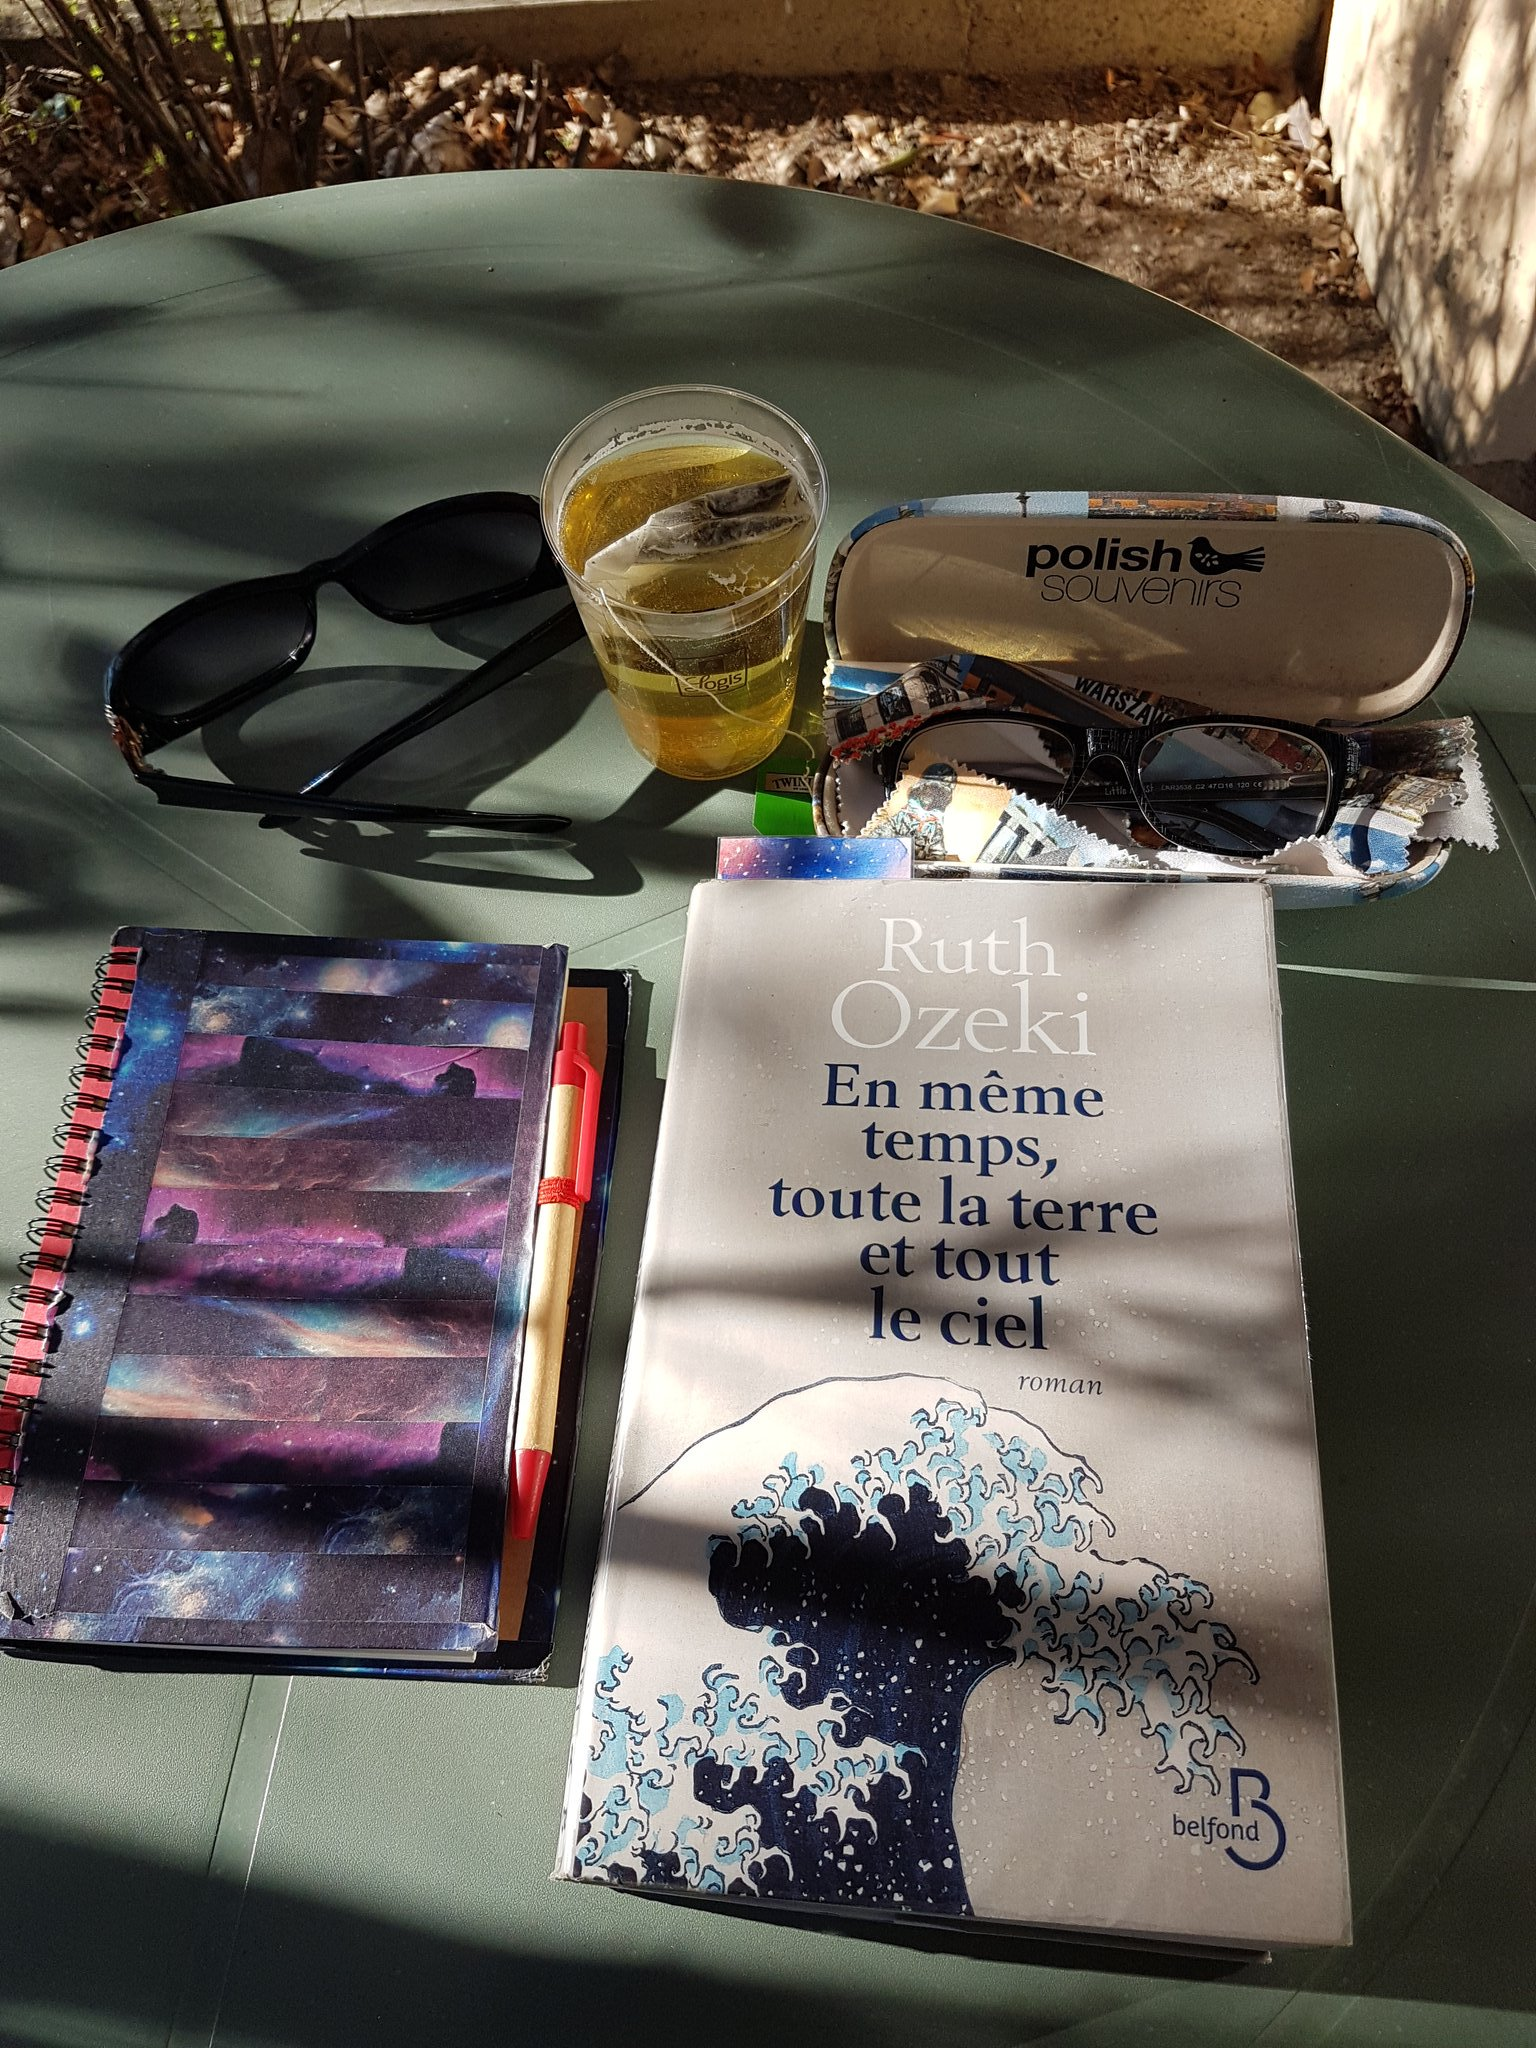 #vacances #montagne #repos #silence #lecture #thé #moment